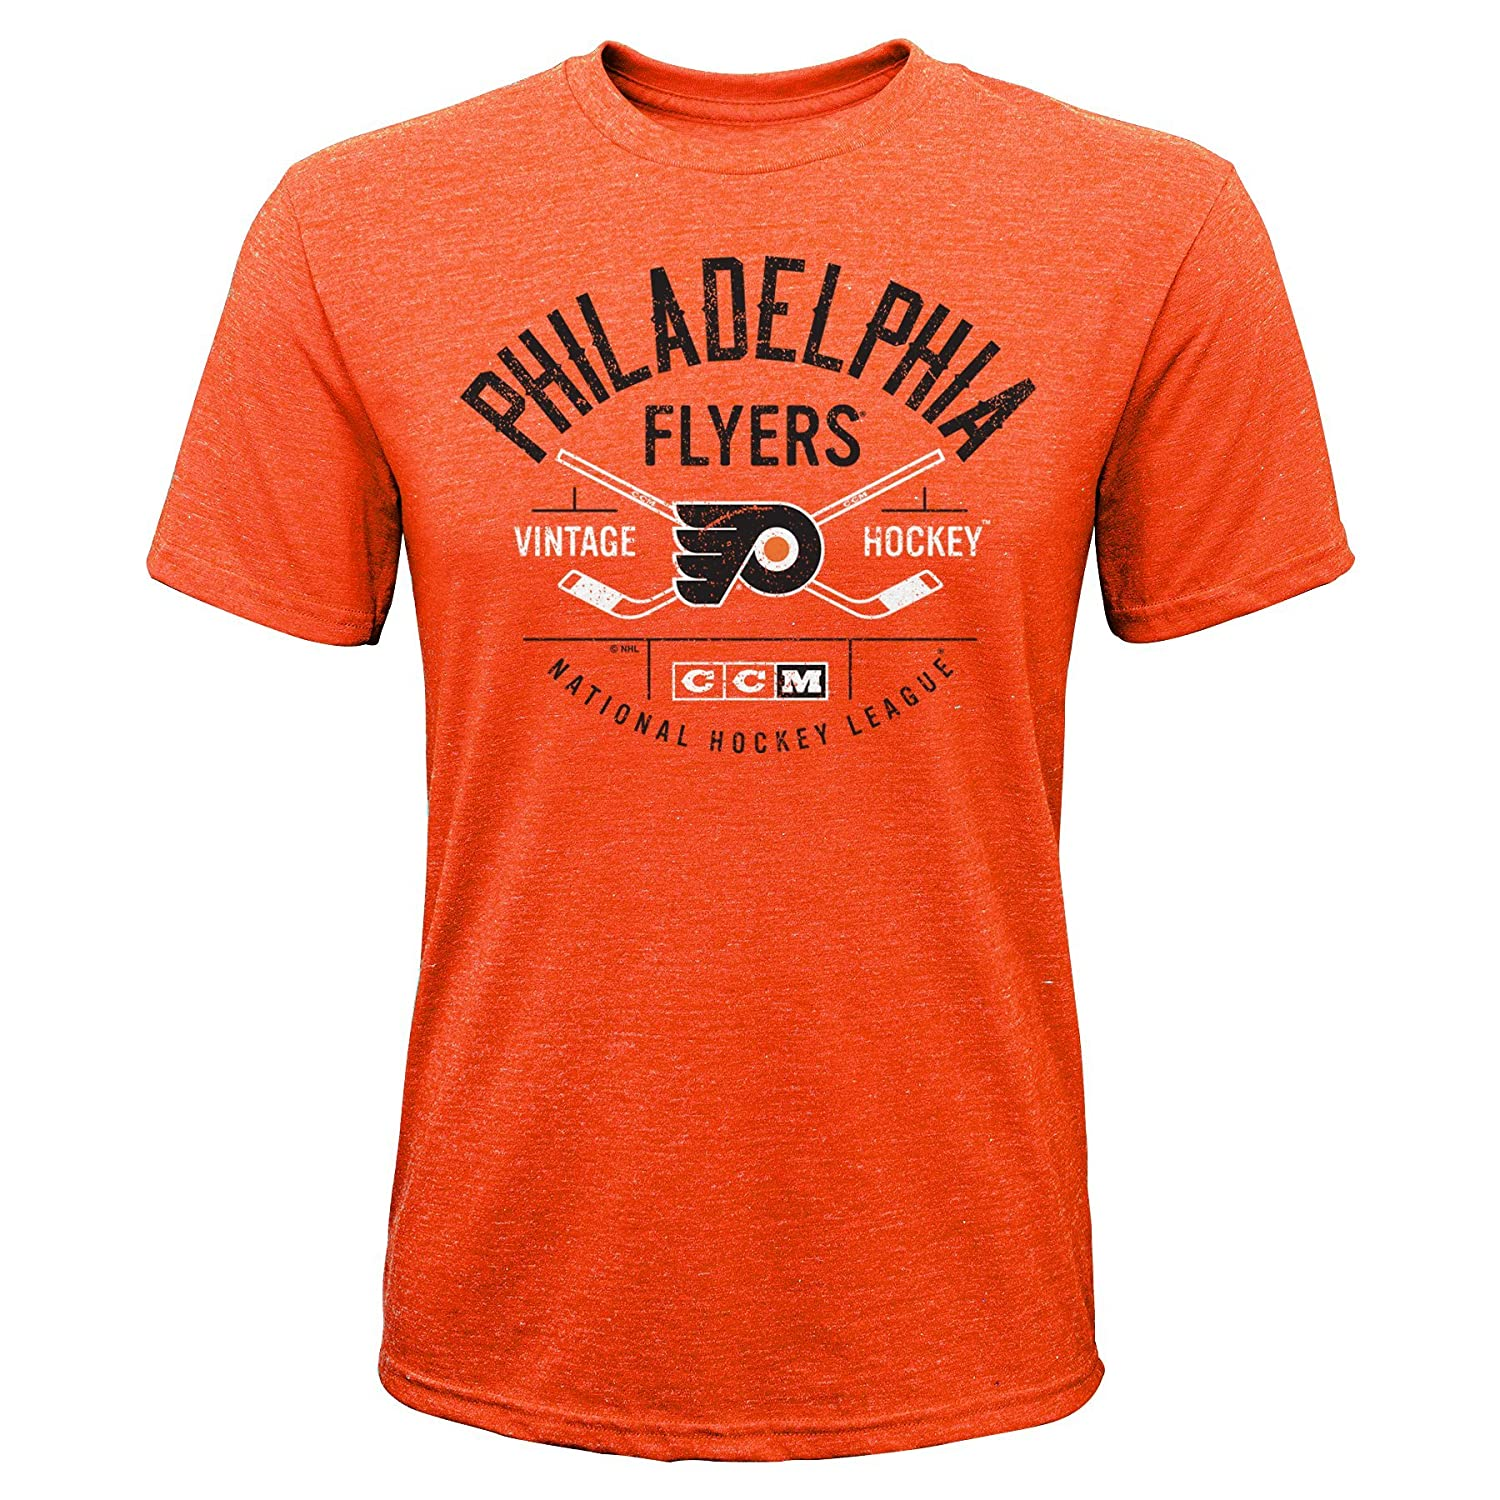 2019年最新海外 (Philadelphia Flyers, X-Large Strength Flyers,/(18)) - OuterStuff Tee Even Strength Triblend Short sleeve Tee B01MTFN76G, 須木村:dc3b7758 --- a0267596.xsph.ru